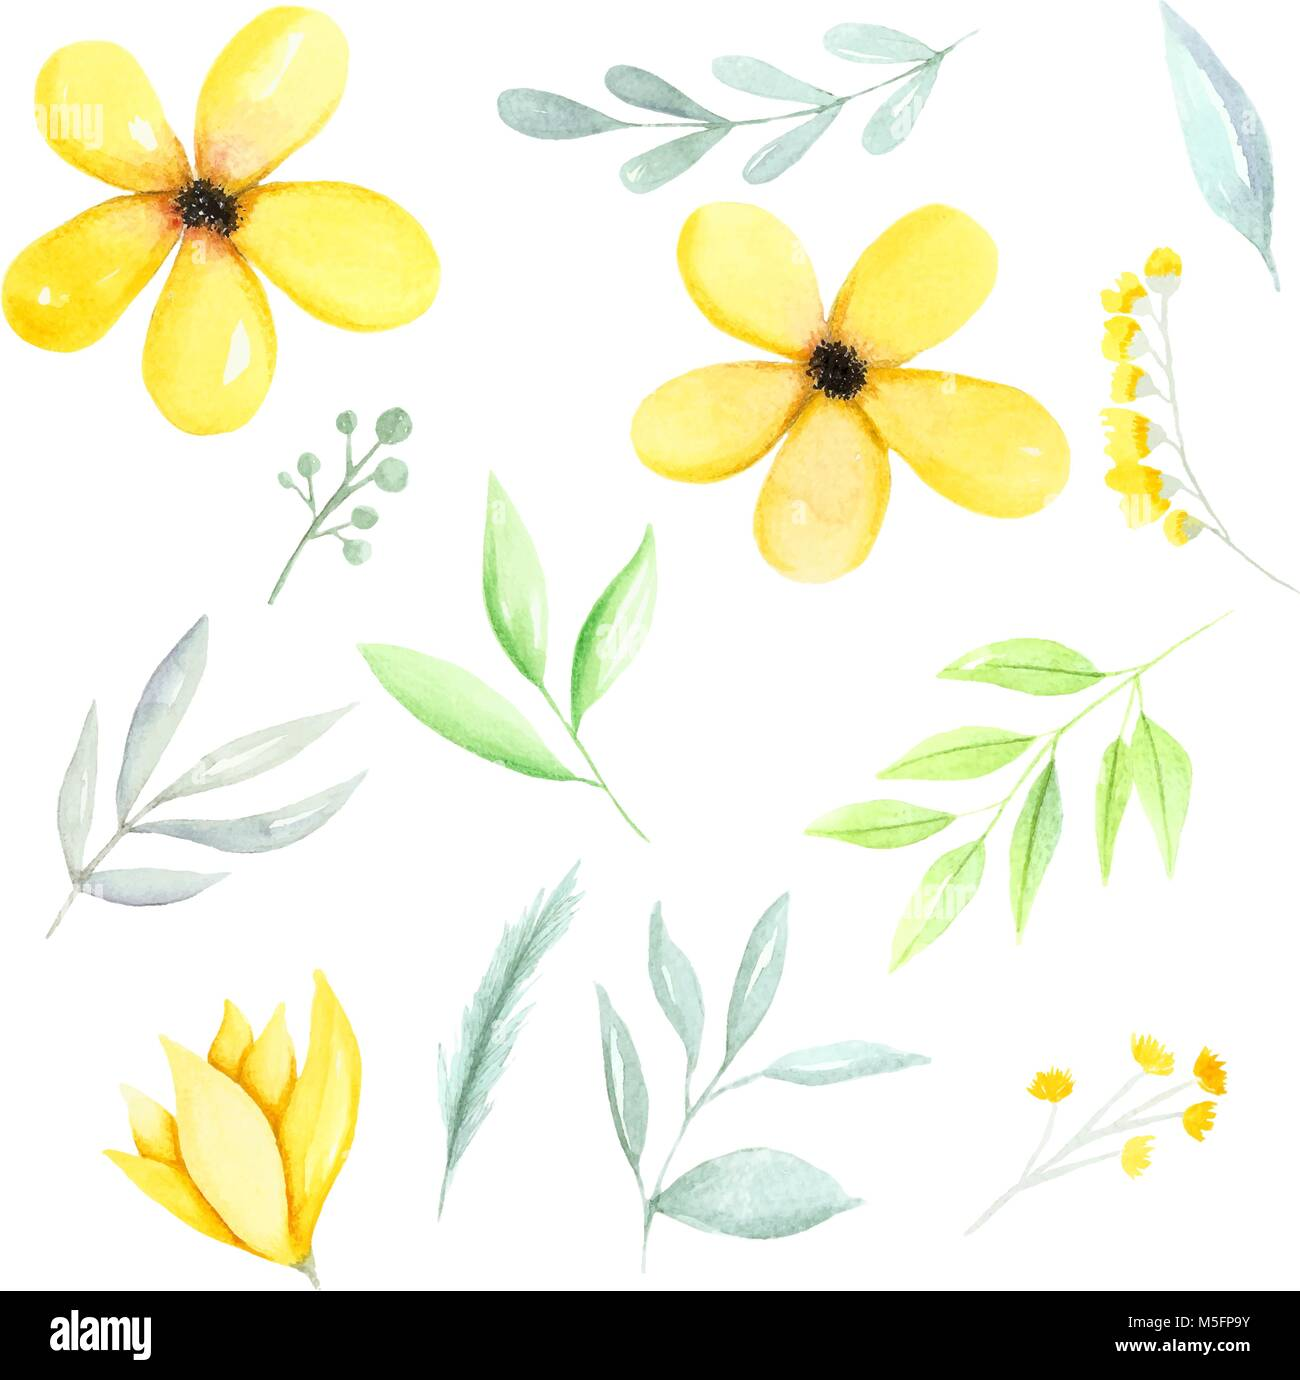 Yellow Watercolor Botanical Elements Yellow Flowers Green Leaves